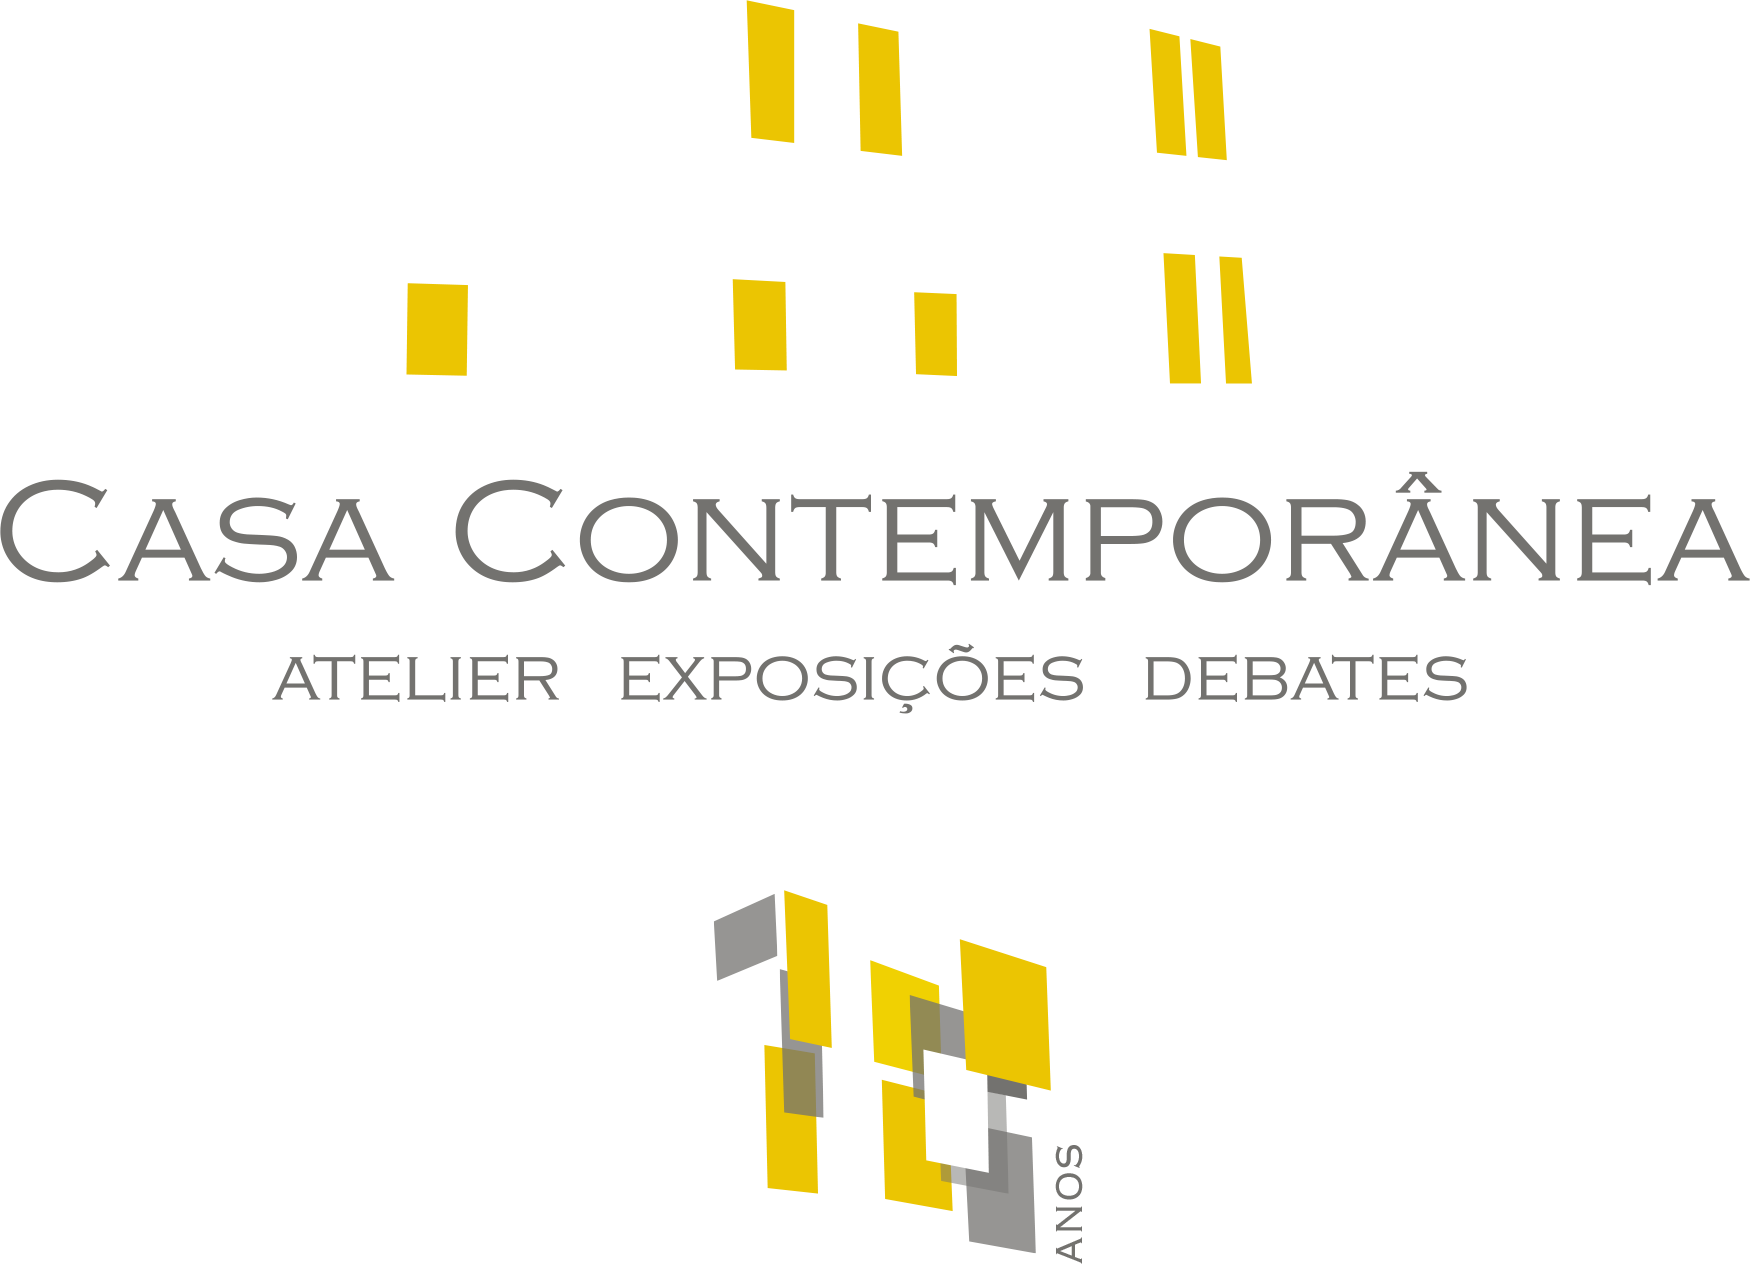 Casa Contemporânea